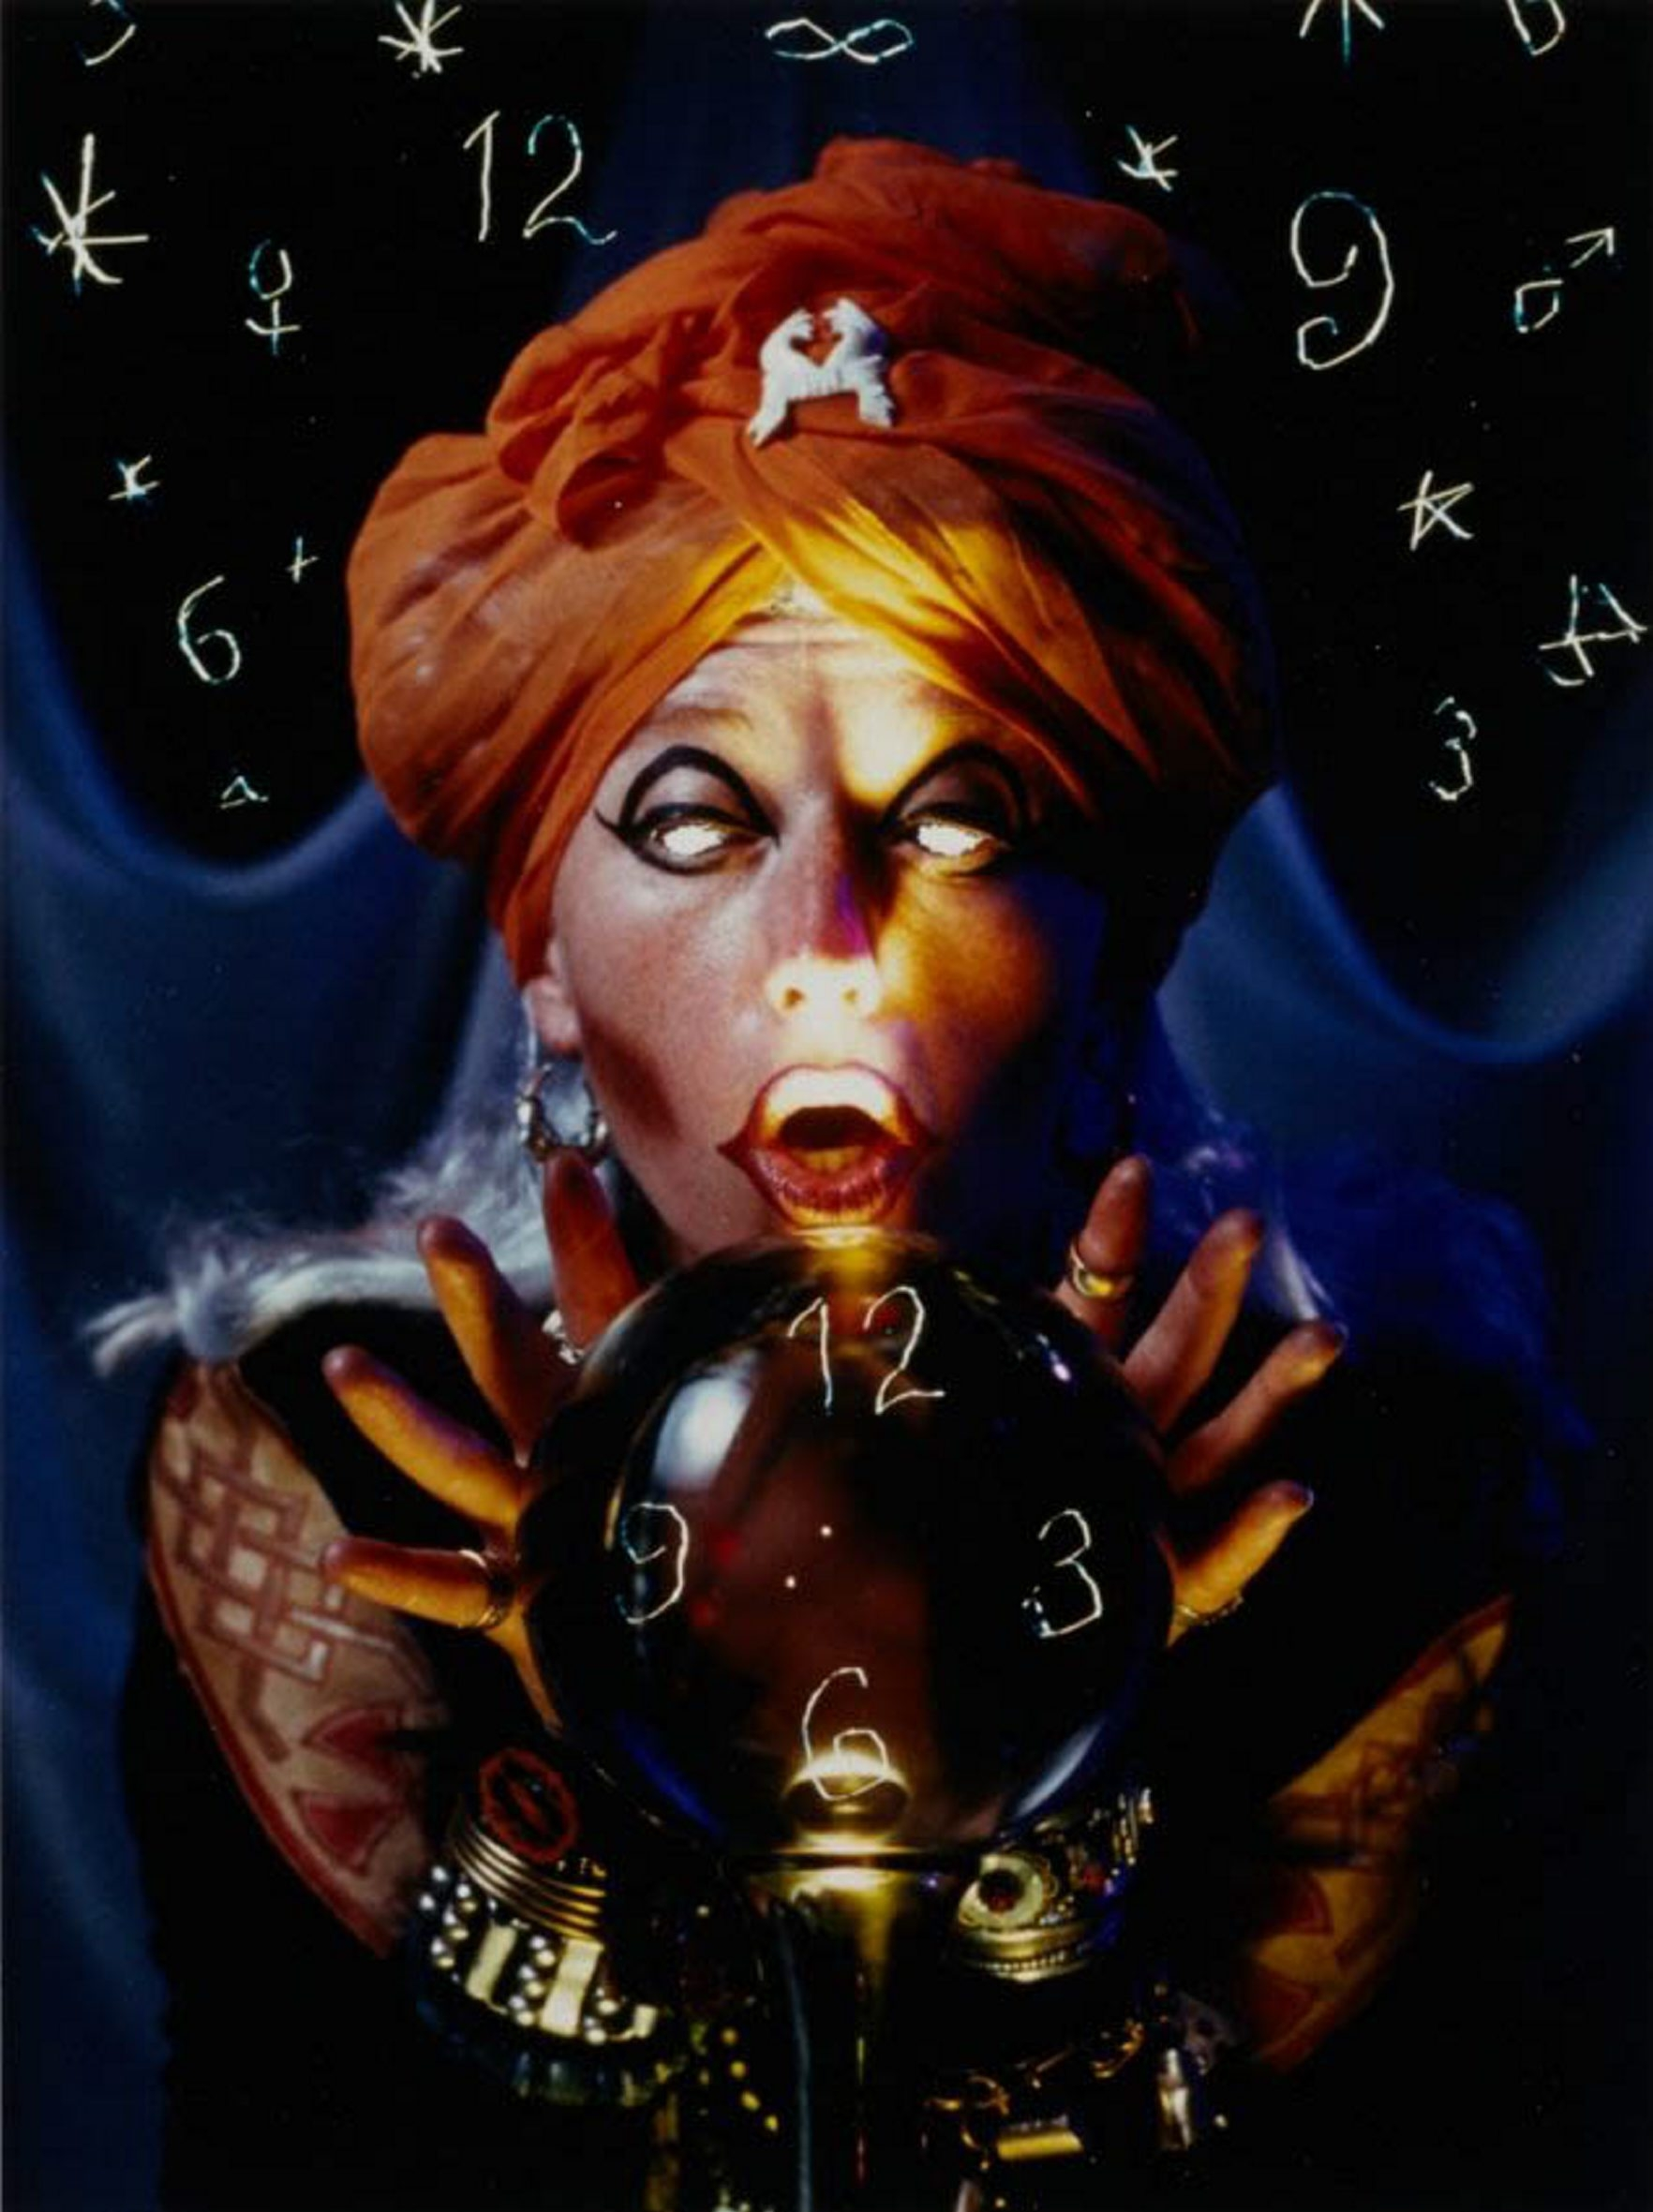 Untitled (Fortune Teller), 1993, Chromogenic color print on Agfa paper, unlimited edition, 11-1/4 x 9-1/4 in.  Collection of Alyssa Rabach Anthone, Buffalo, NY. for Niagara Weekend